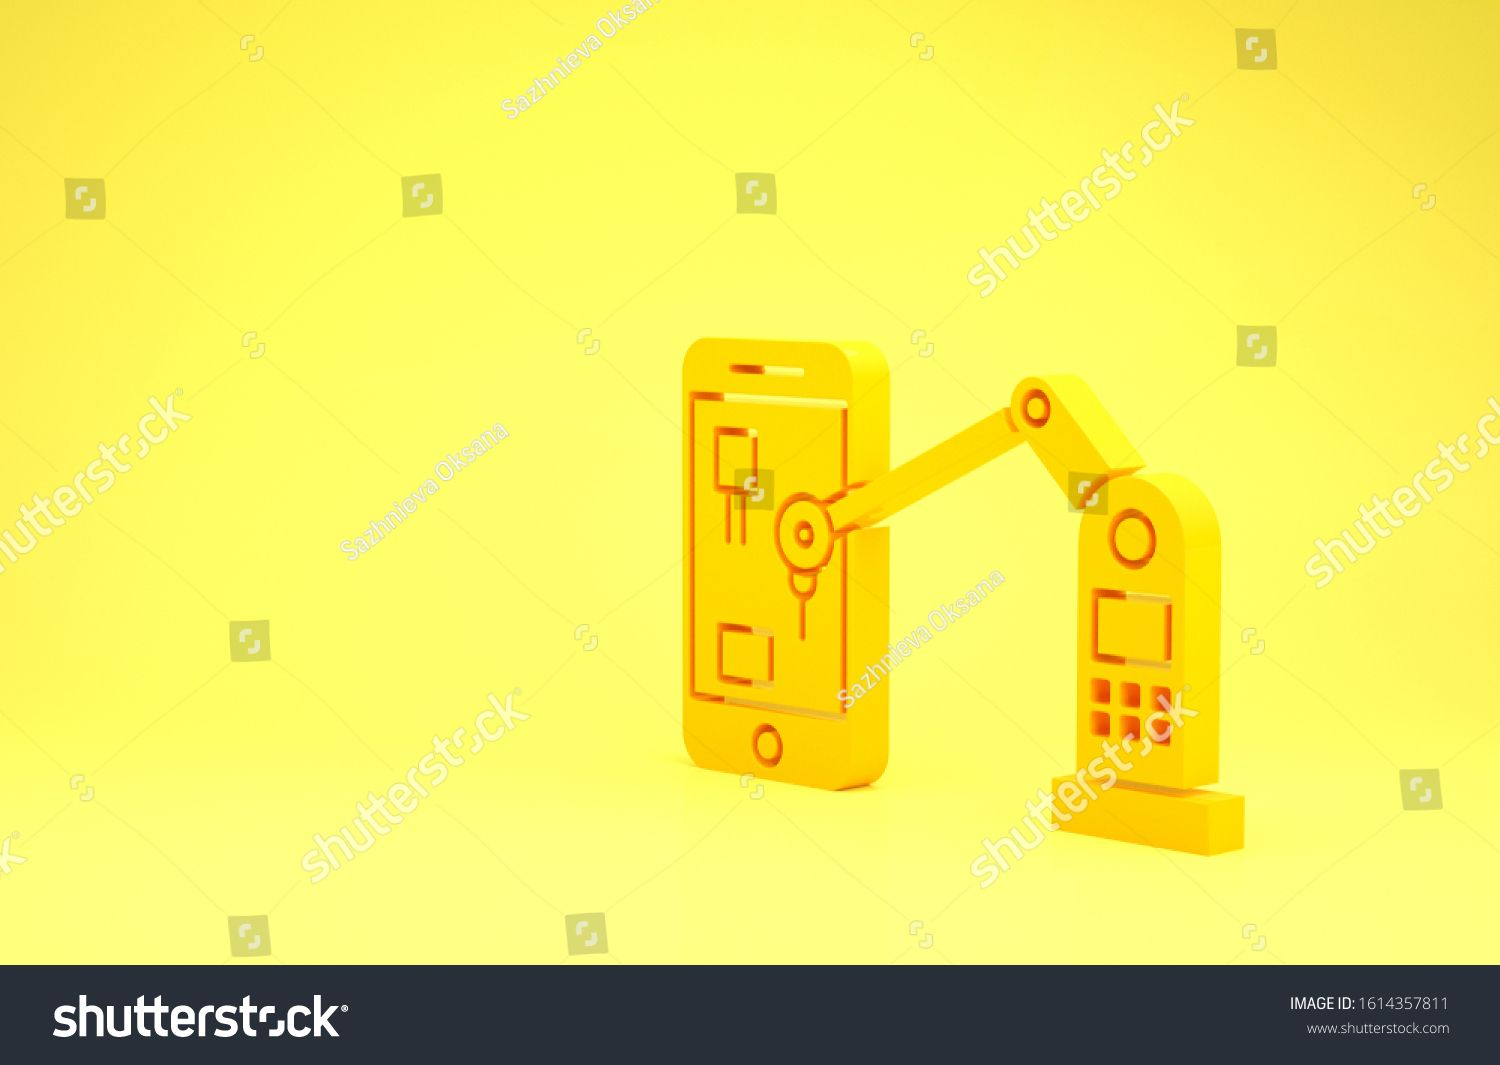 Yellow Industrial machine robotic robot arm hand on mobile